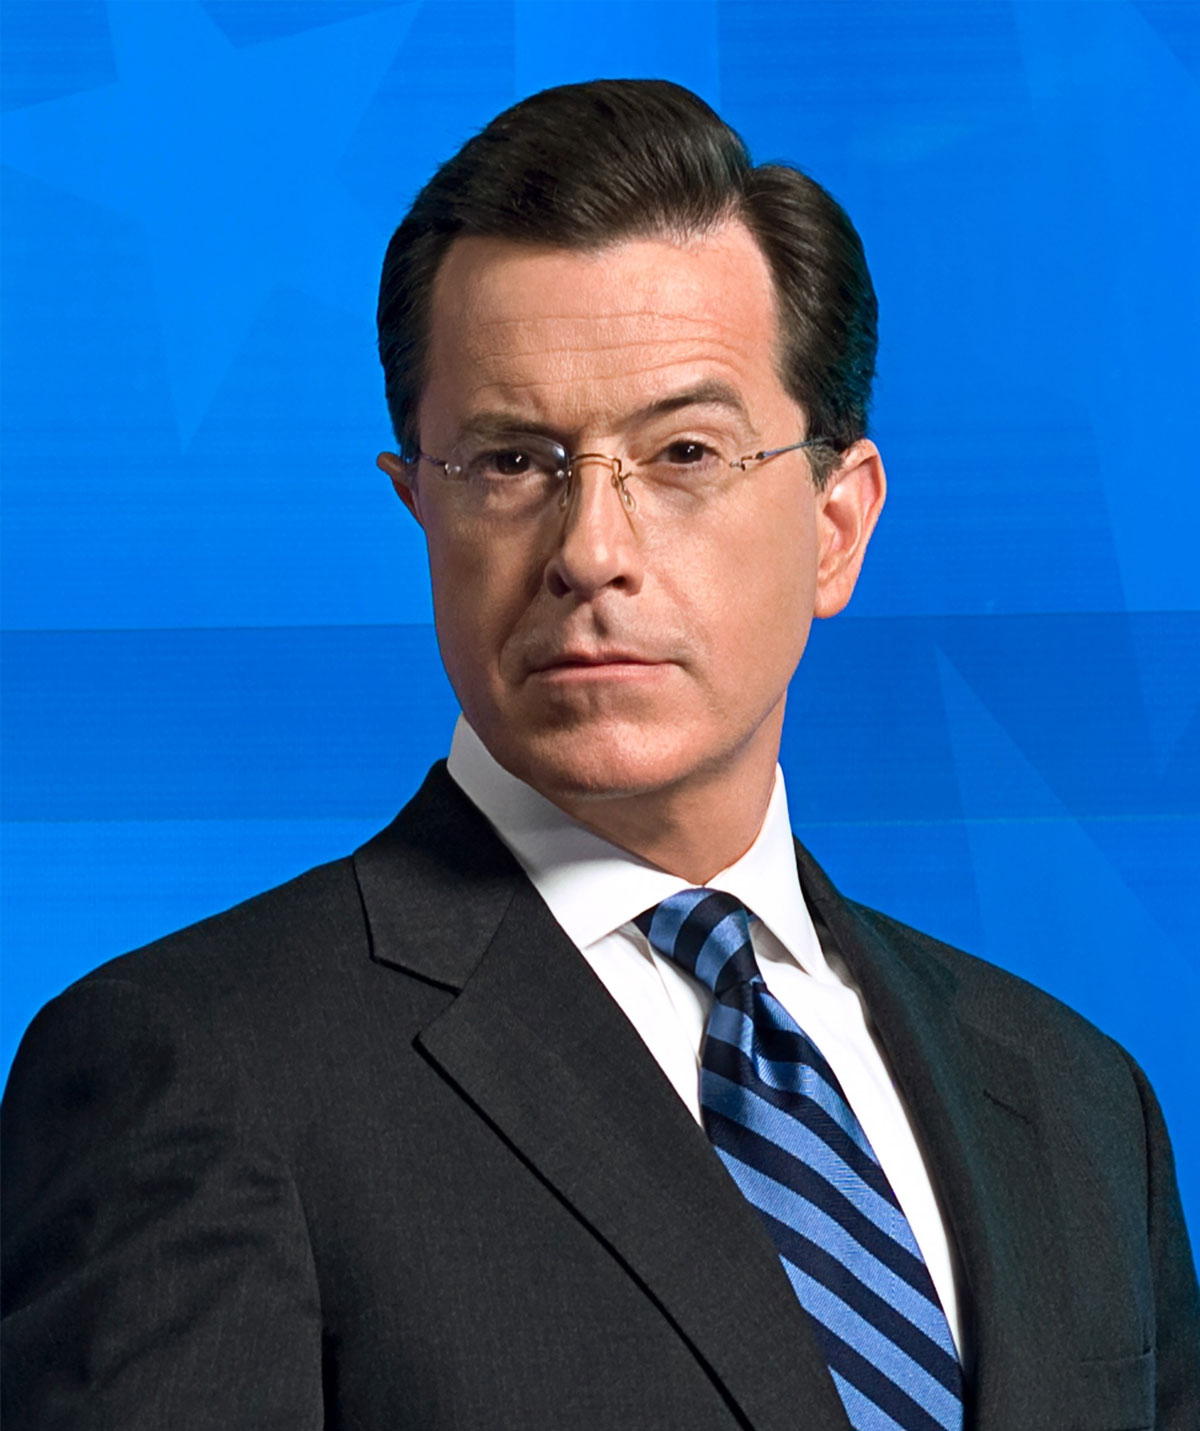 New Stephen Colbert Photo View 954565 Wallpapers RiseWLP 1200x1431